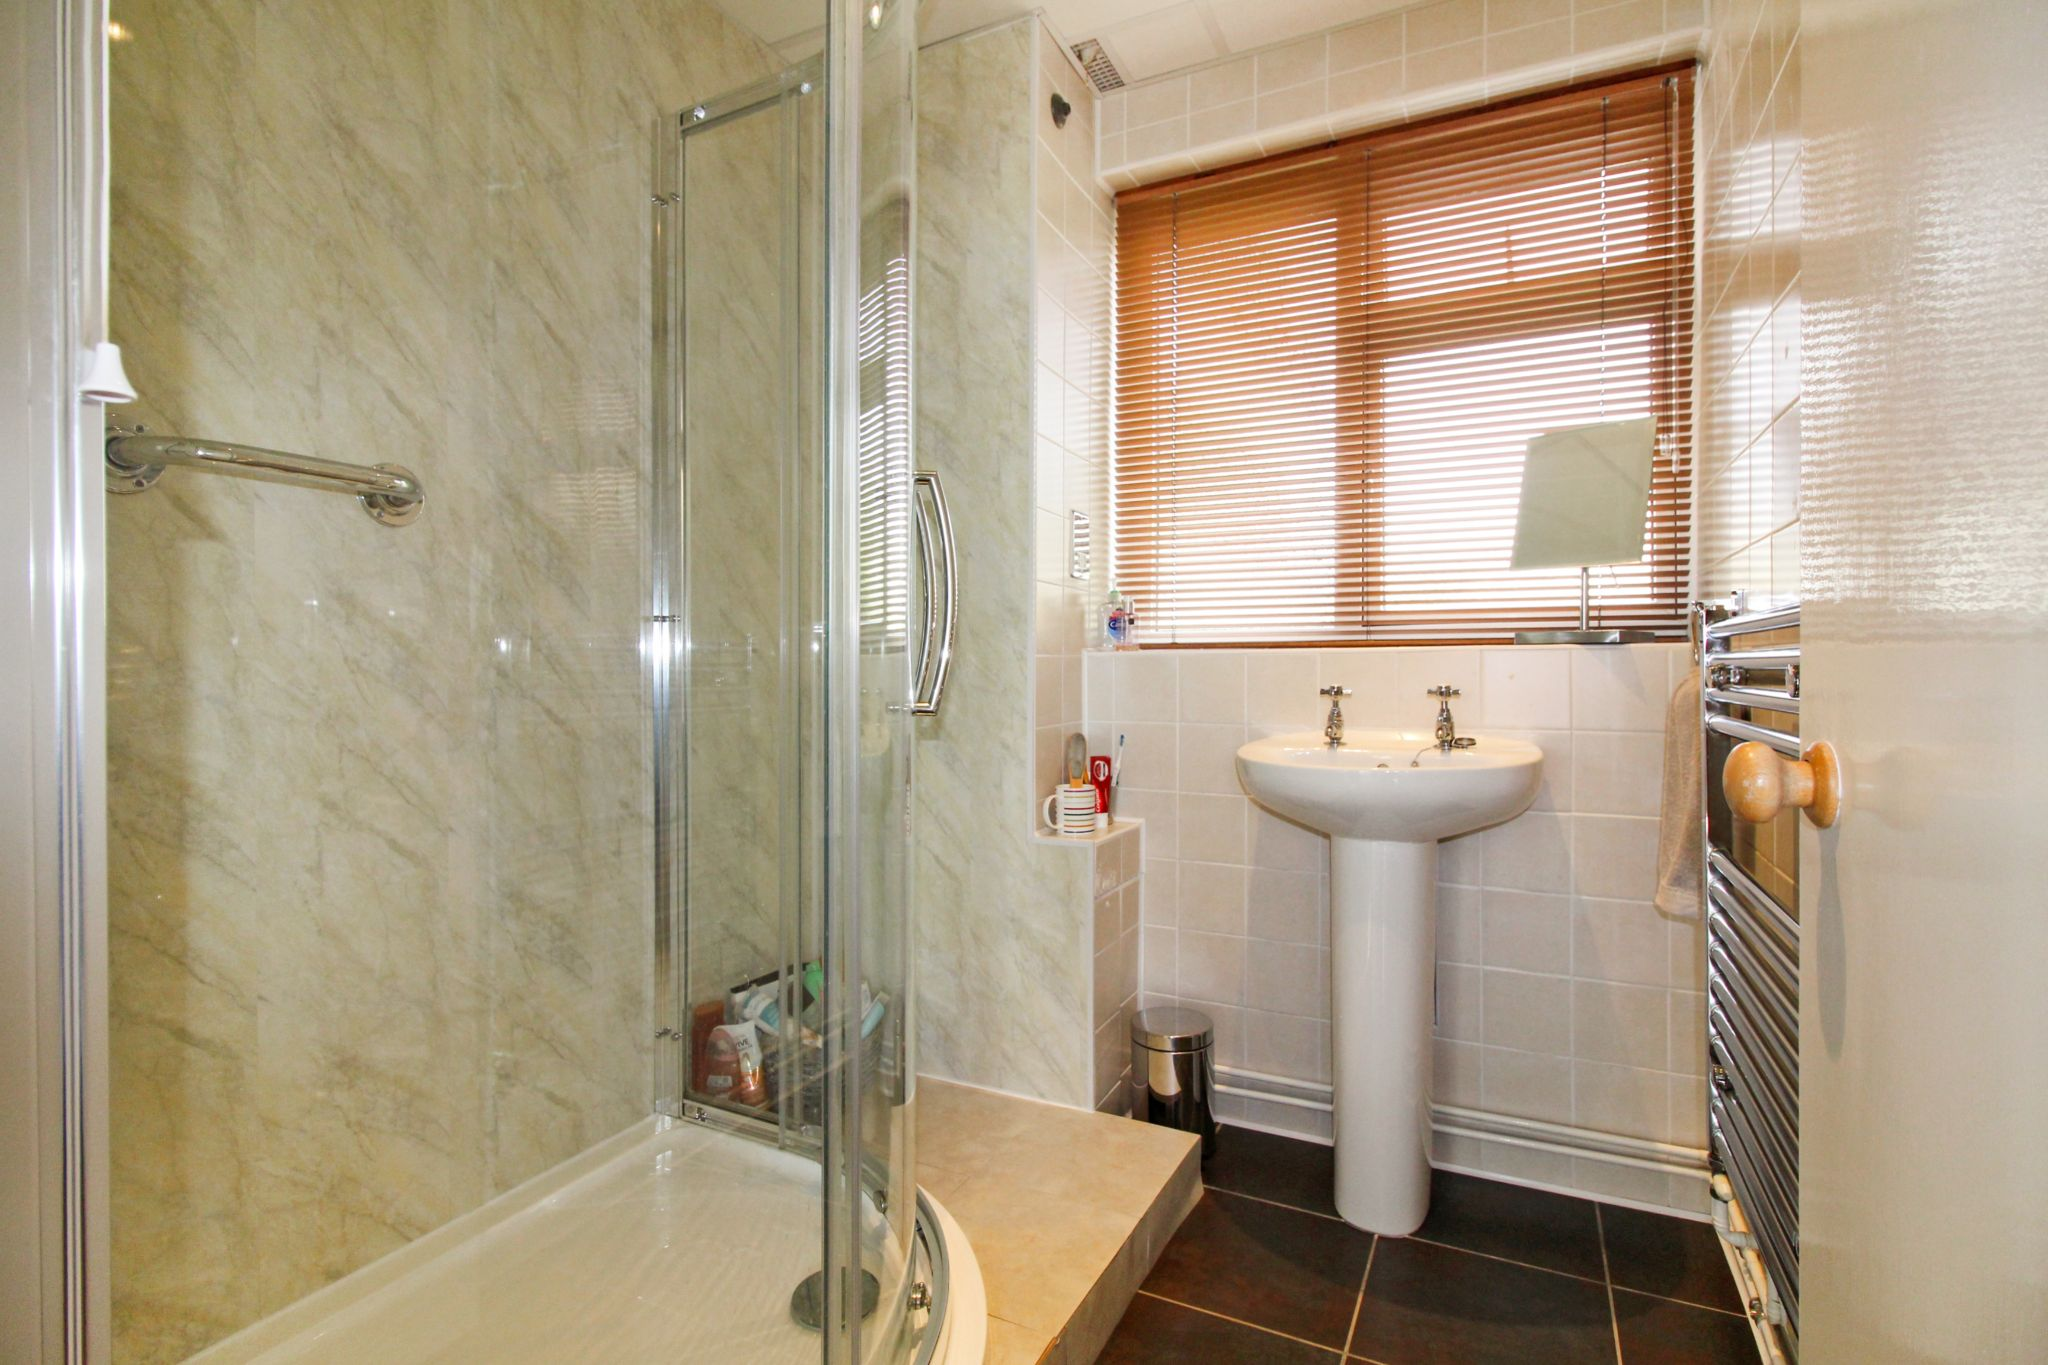 2 bedroom ground floor flat/apartment For Sale in Solihull - Photograph 10.